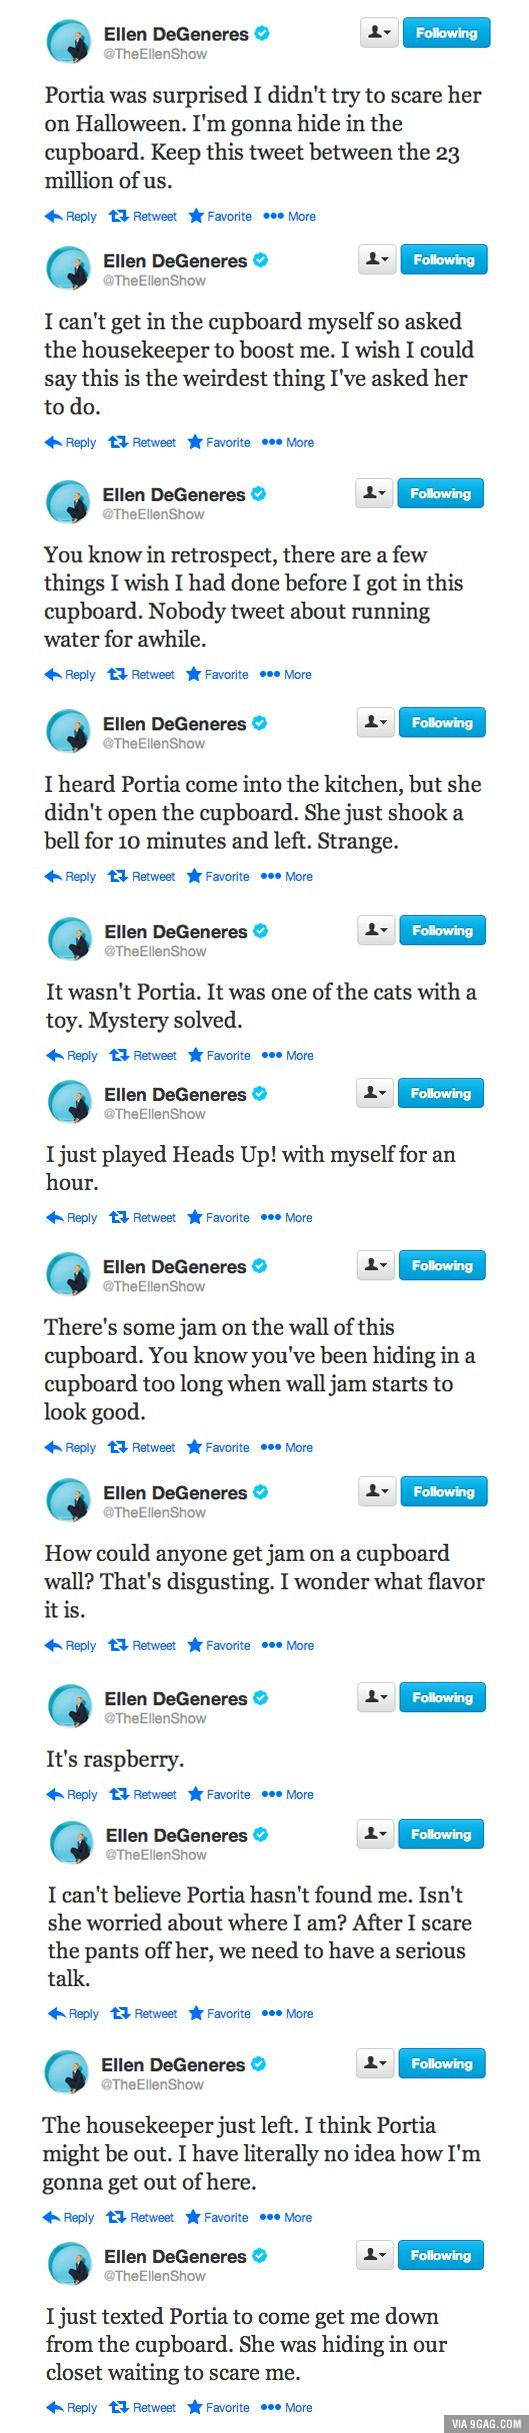 Married Life with Ellen and Portia <---This is the best thing ever I WANT MARRIAGE LIKE ELLEN & PORTIA'S